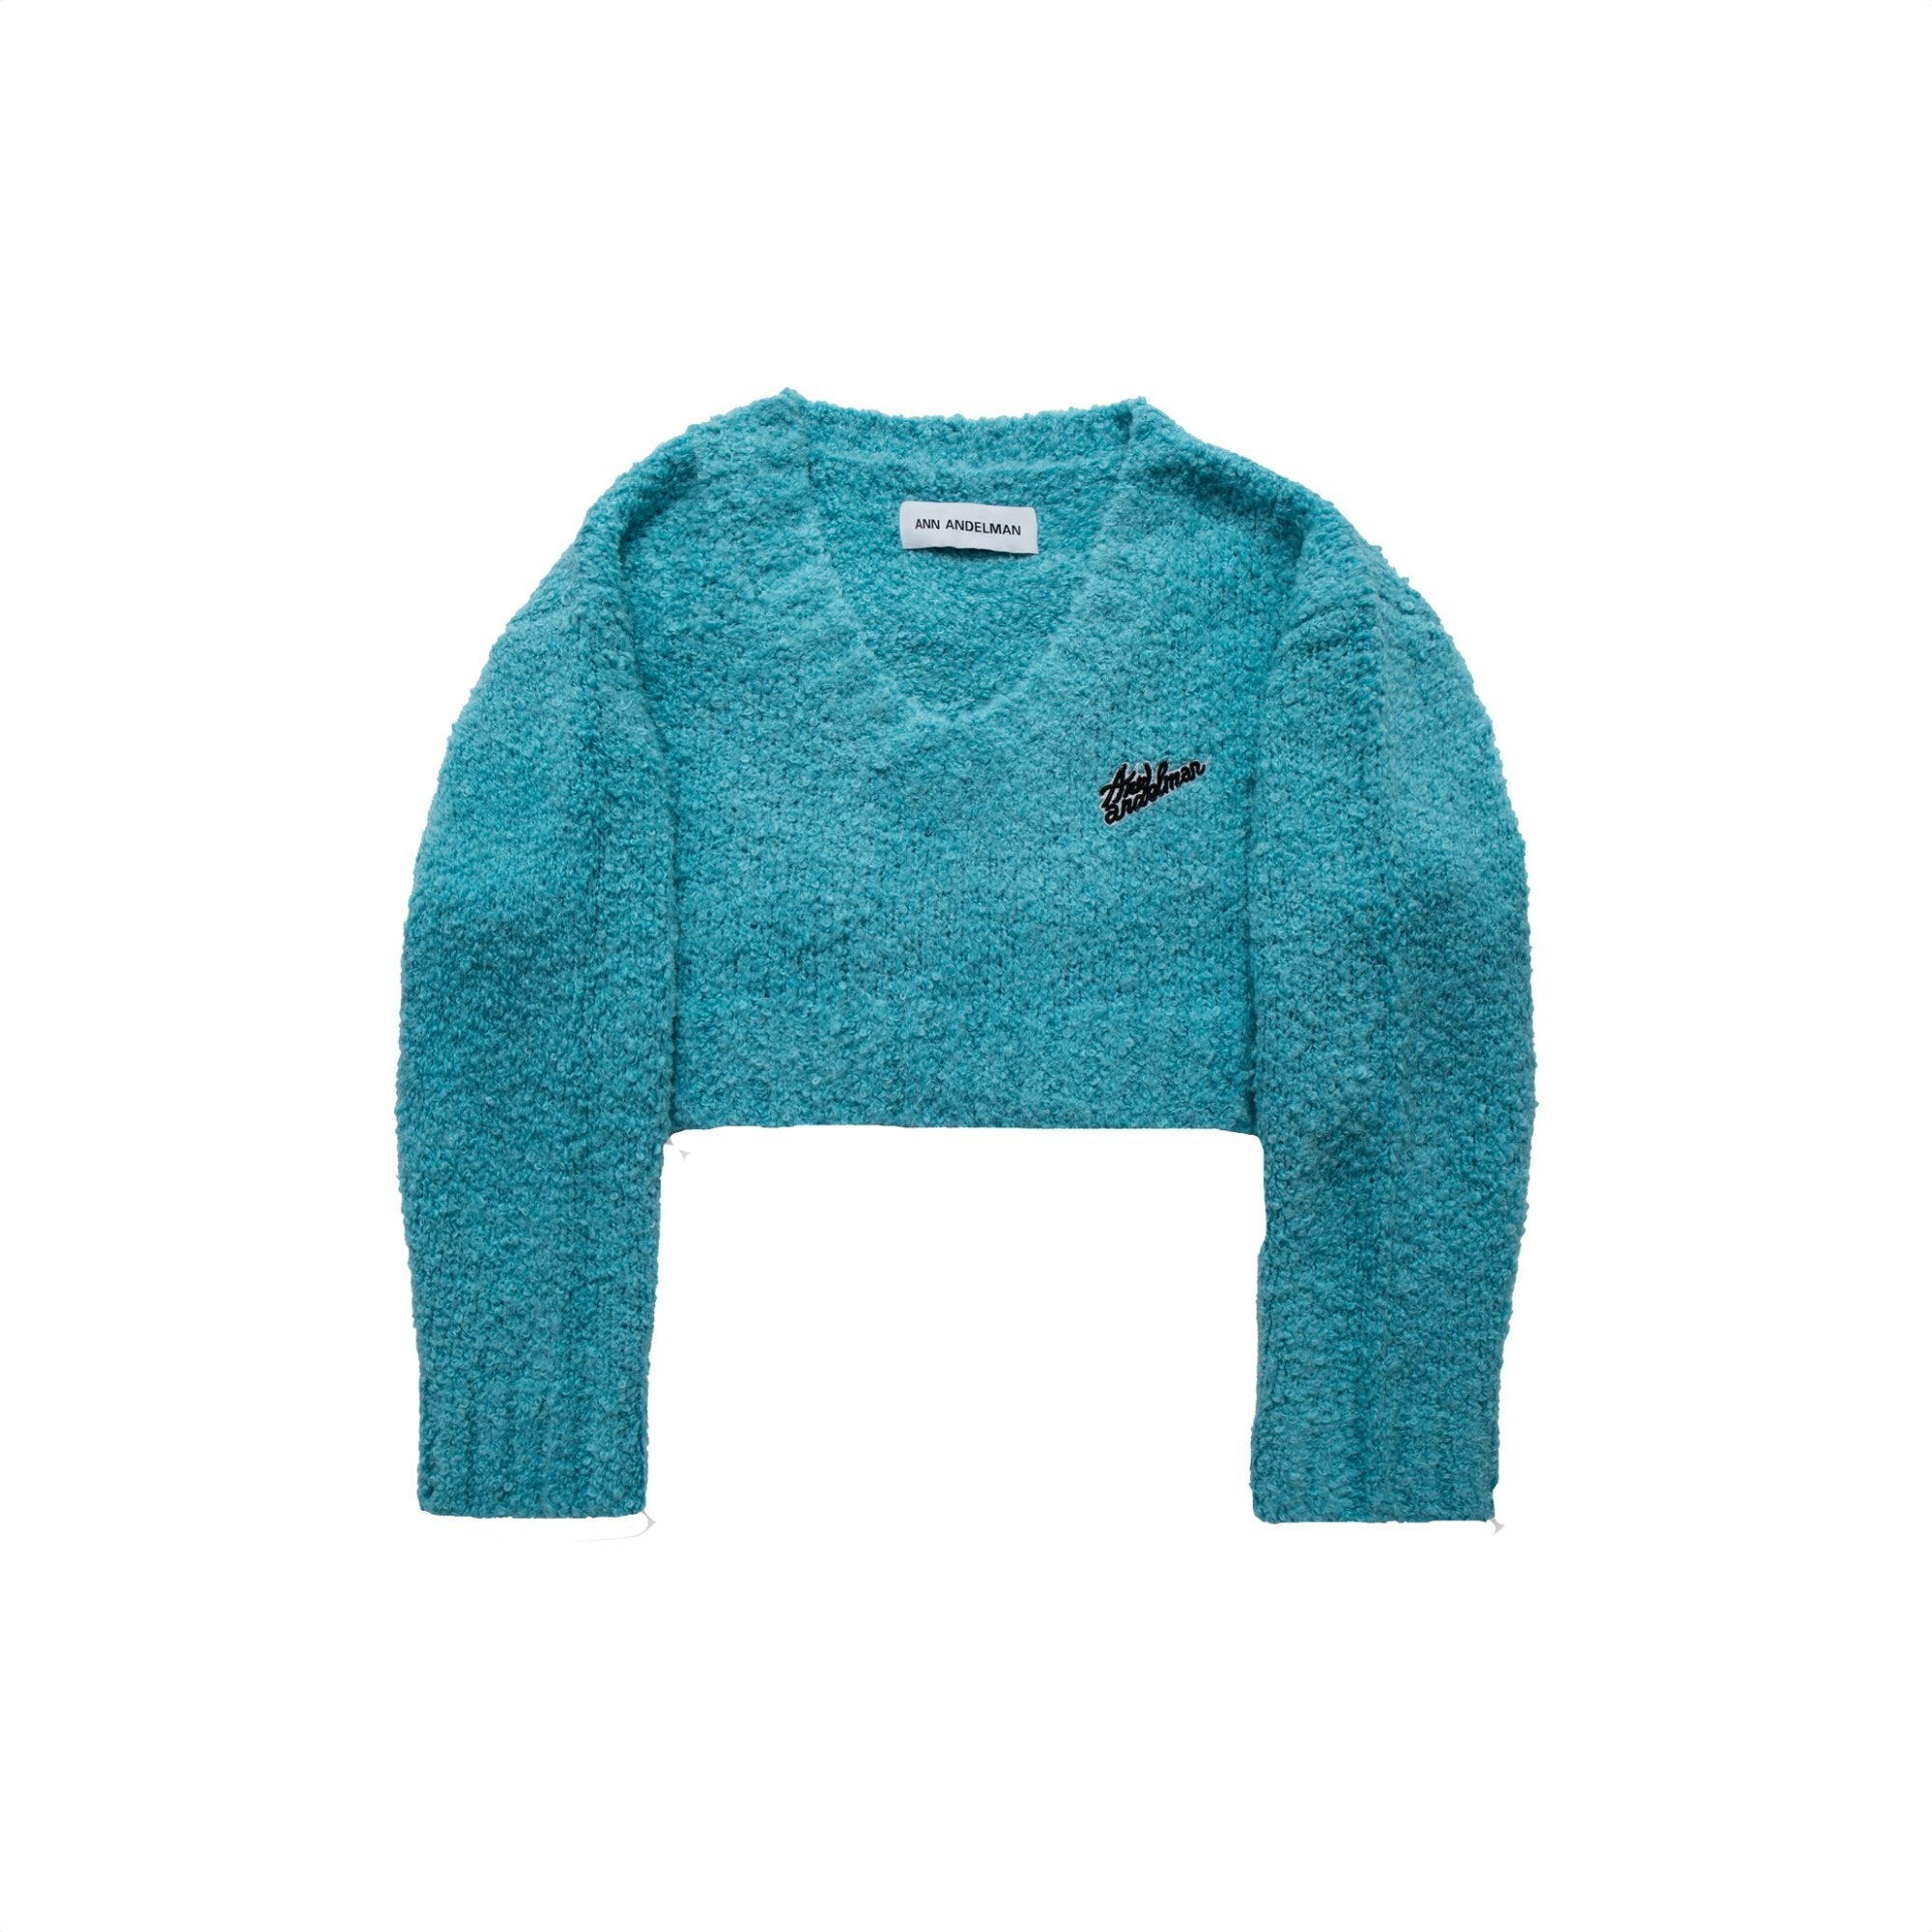 ANN ANDELMAN Blue V-Neck Sweatshirt | MADA IN CHINA